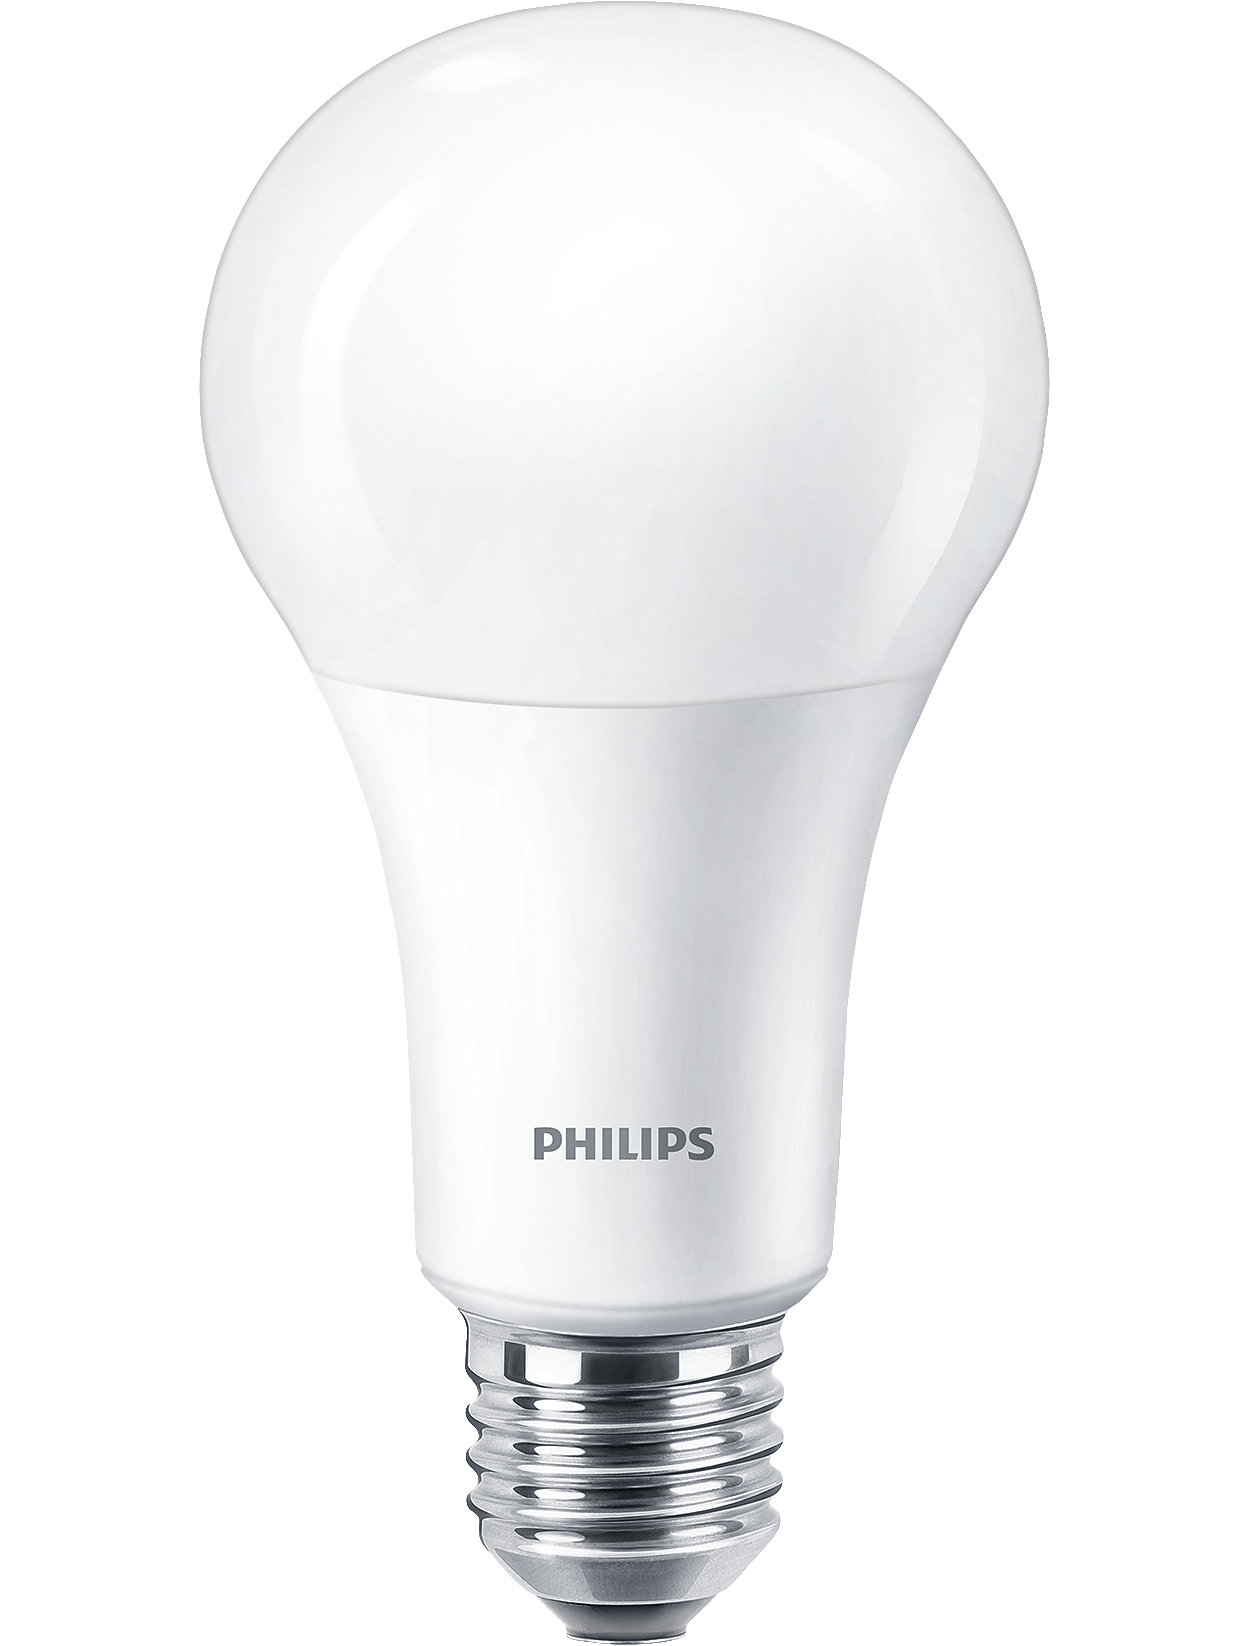 corepro ledbulb d 13 5 100w a67 e27 827 corepro ledbulb. Black Bedroom Furniture Sets. Home Design Ideas